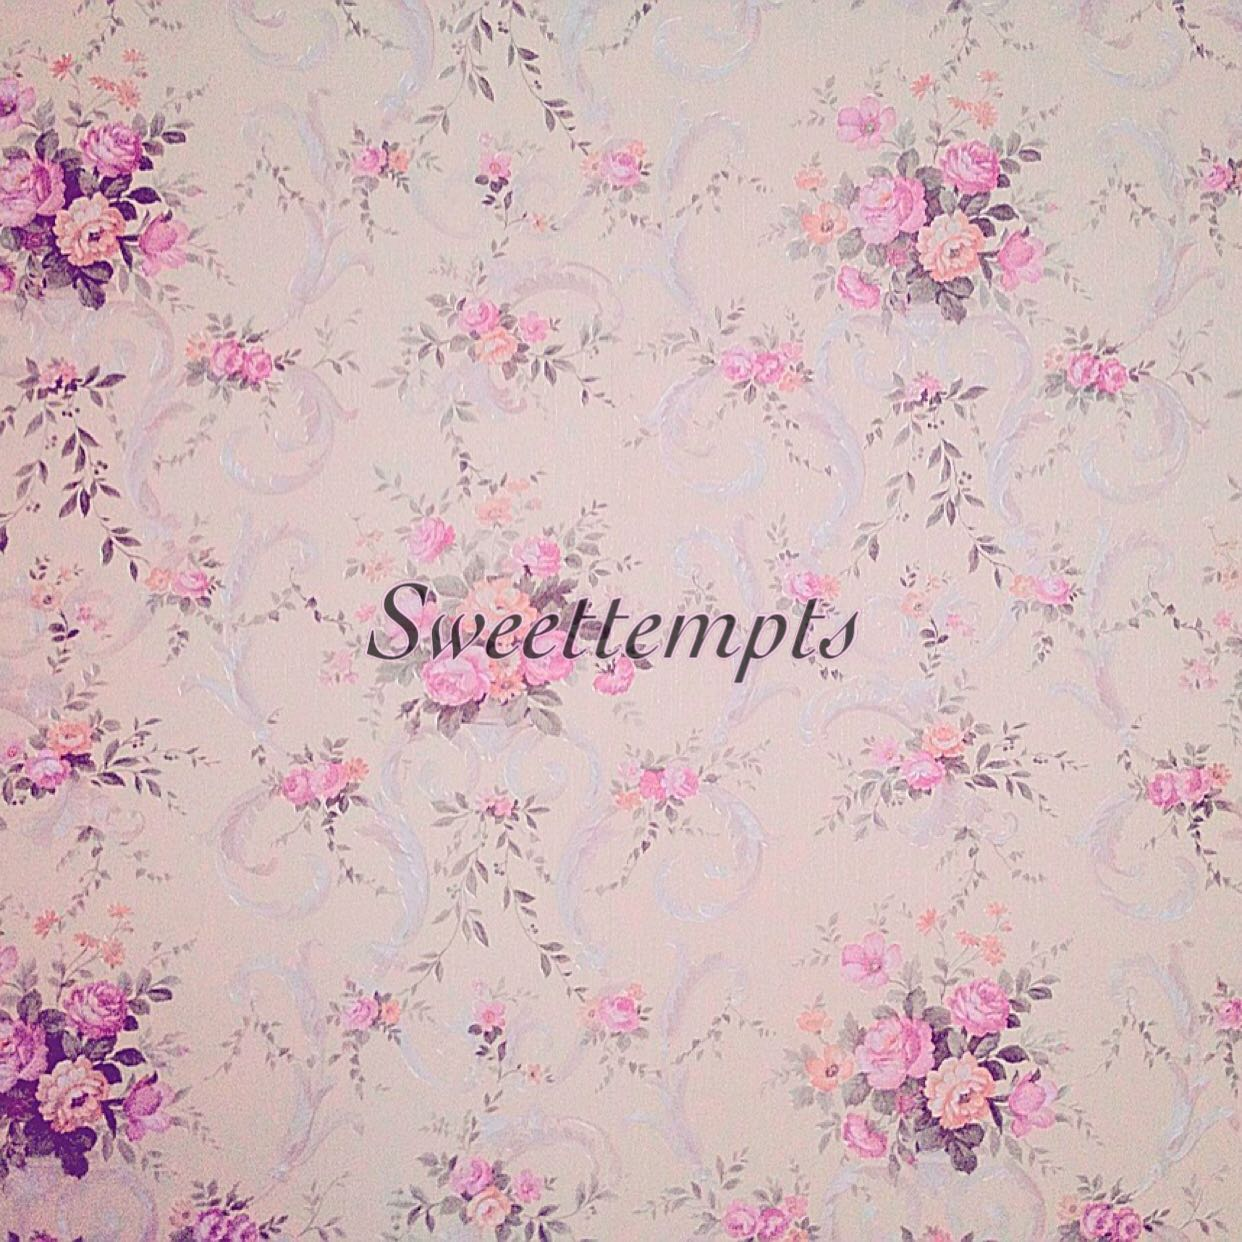 swttempts